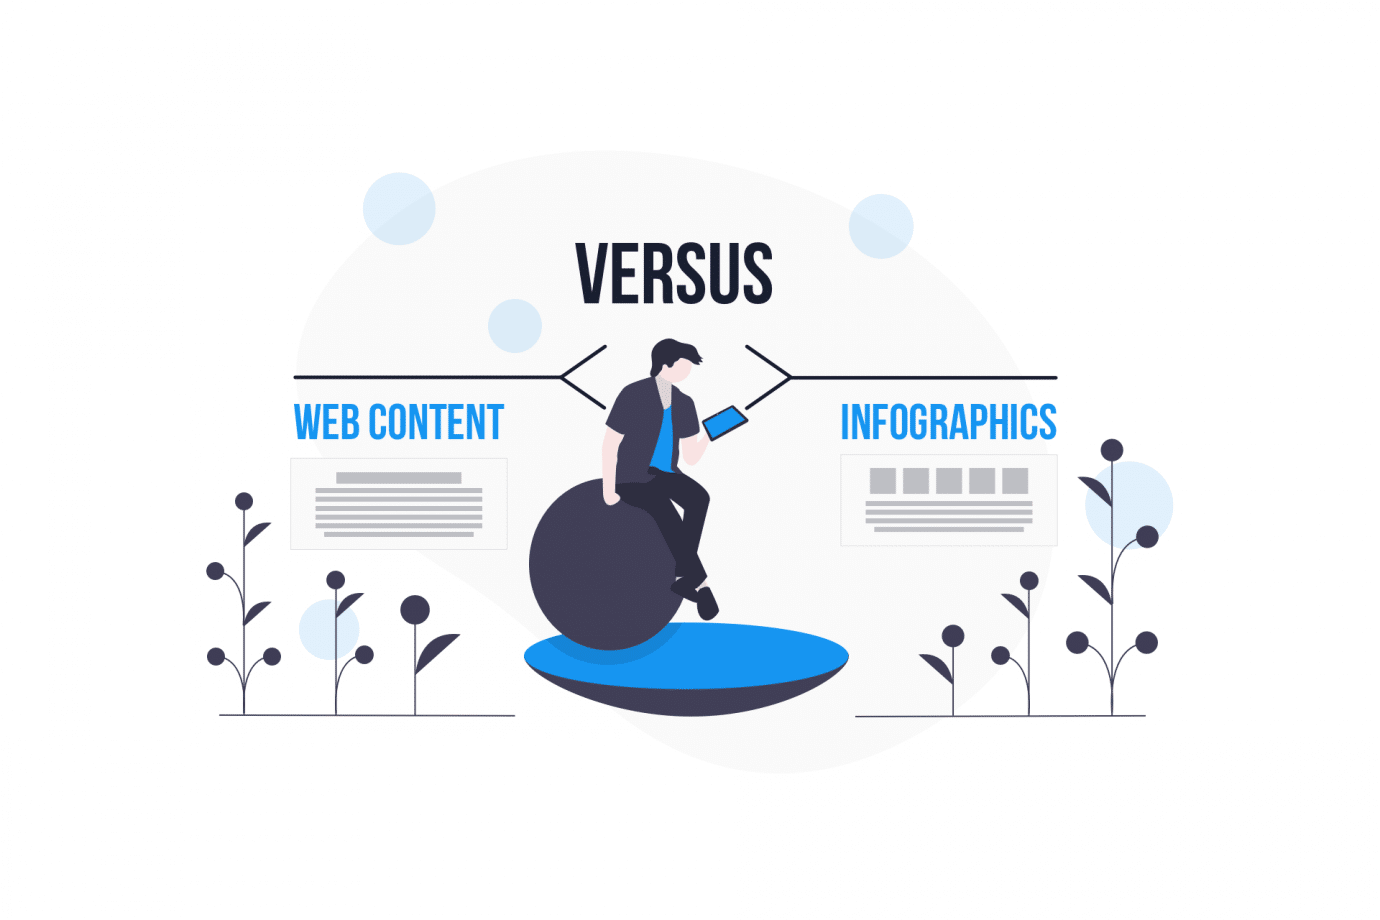 Infographics VS. Content: What is more Effective for Lawyer Websites in 2019?